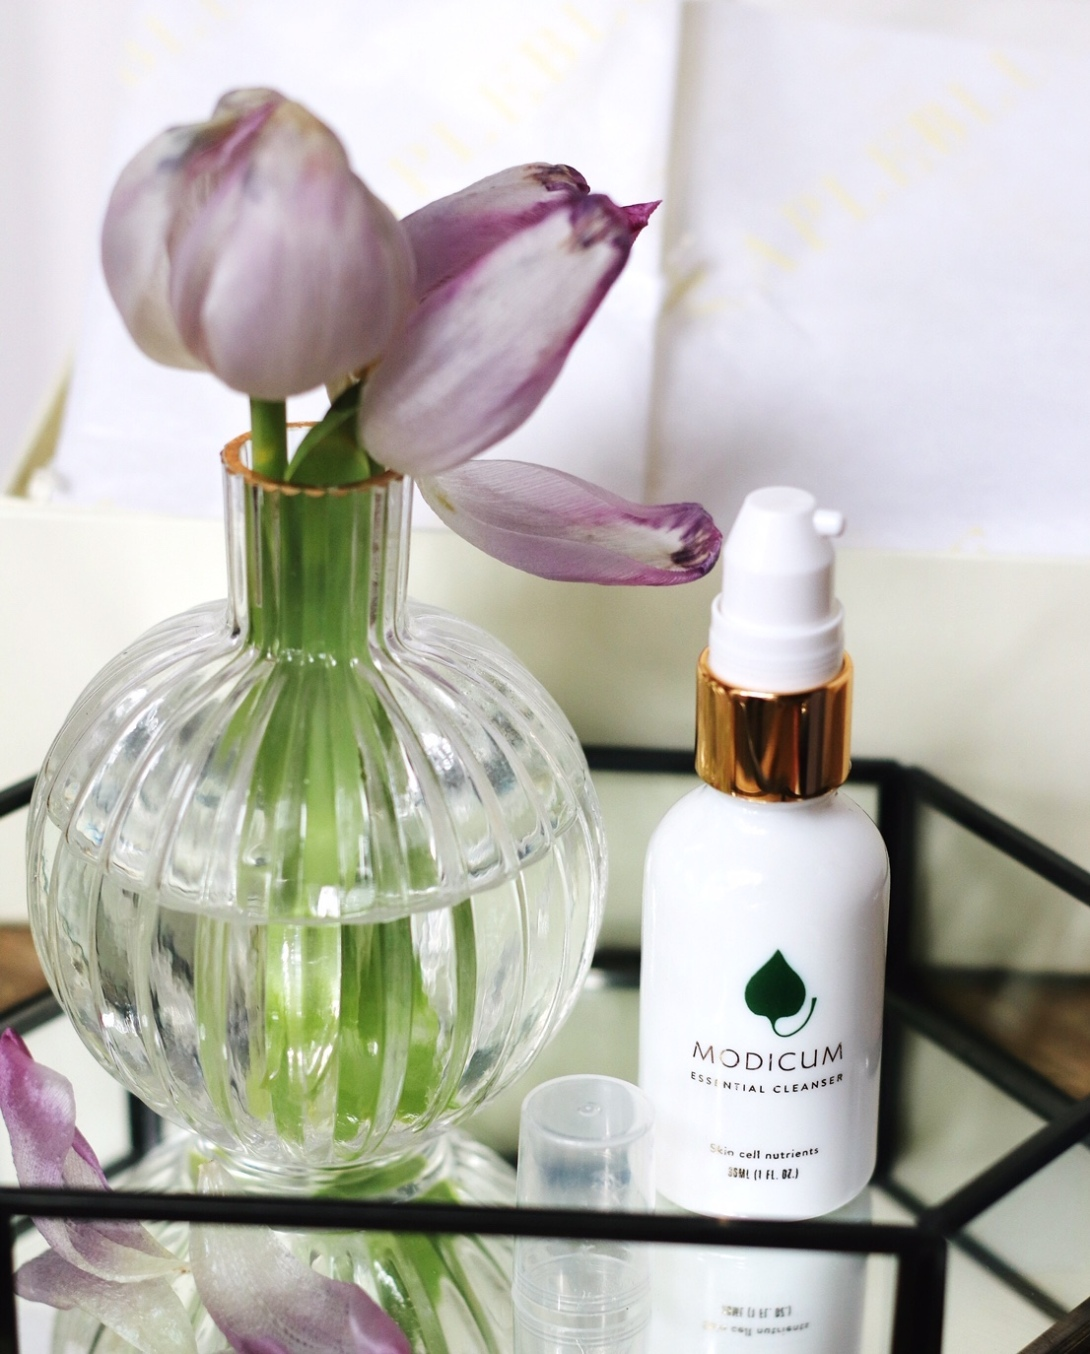 Mapleblume May Modicum essential cleanser